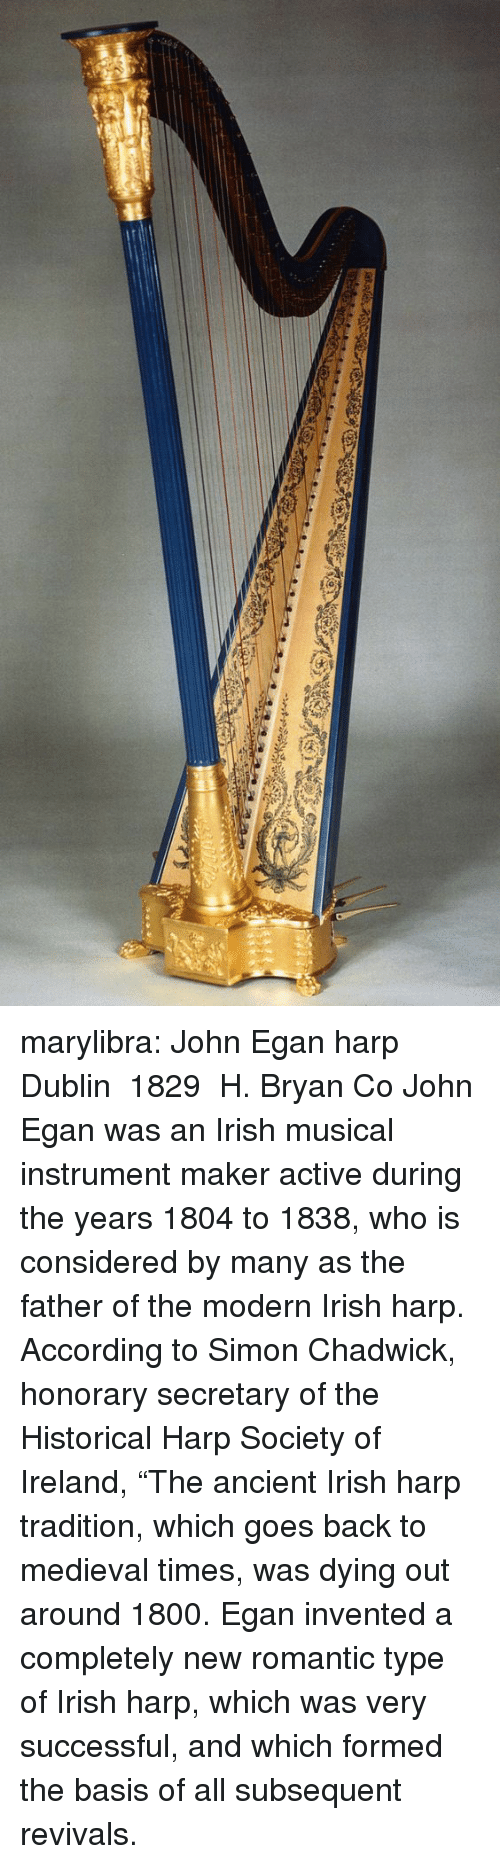 """dublin: marylibra: John Egan harp Dublin 1829 H. Bryan  Co John Egan was an Irish musical instrument maker active during the years 1804 to 1838, who is considered by many as the father of the modern Irish harp. According to Simon Chadwick, honorary secretary of the Historical Harp Society of Ireland, """"The ancient Irish harp tradition, which goes back to medieval times, was dying out around 1800. Egan invented a completely new romantic type of Irish harp, which was very successful, and which formed the basis of all subsequent revivals."""